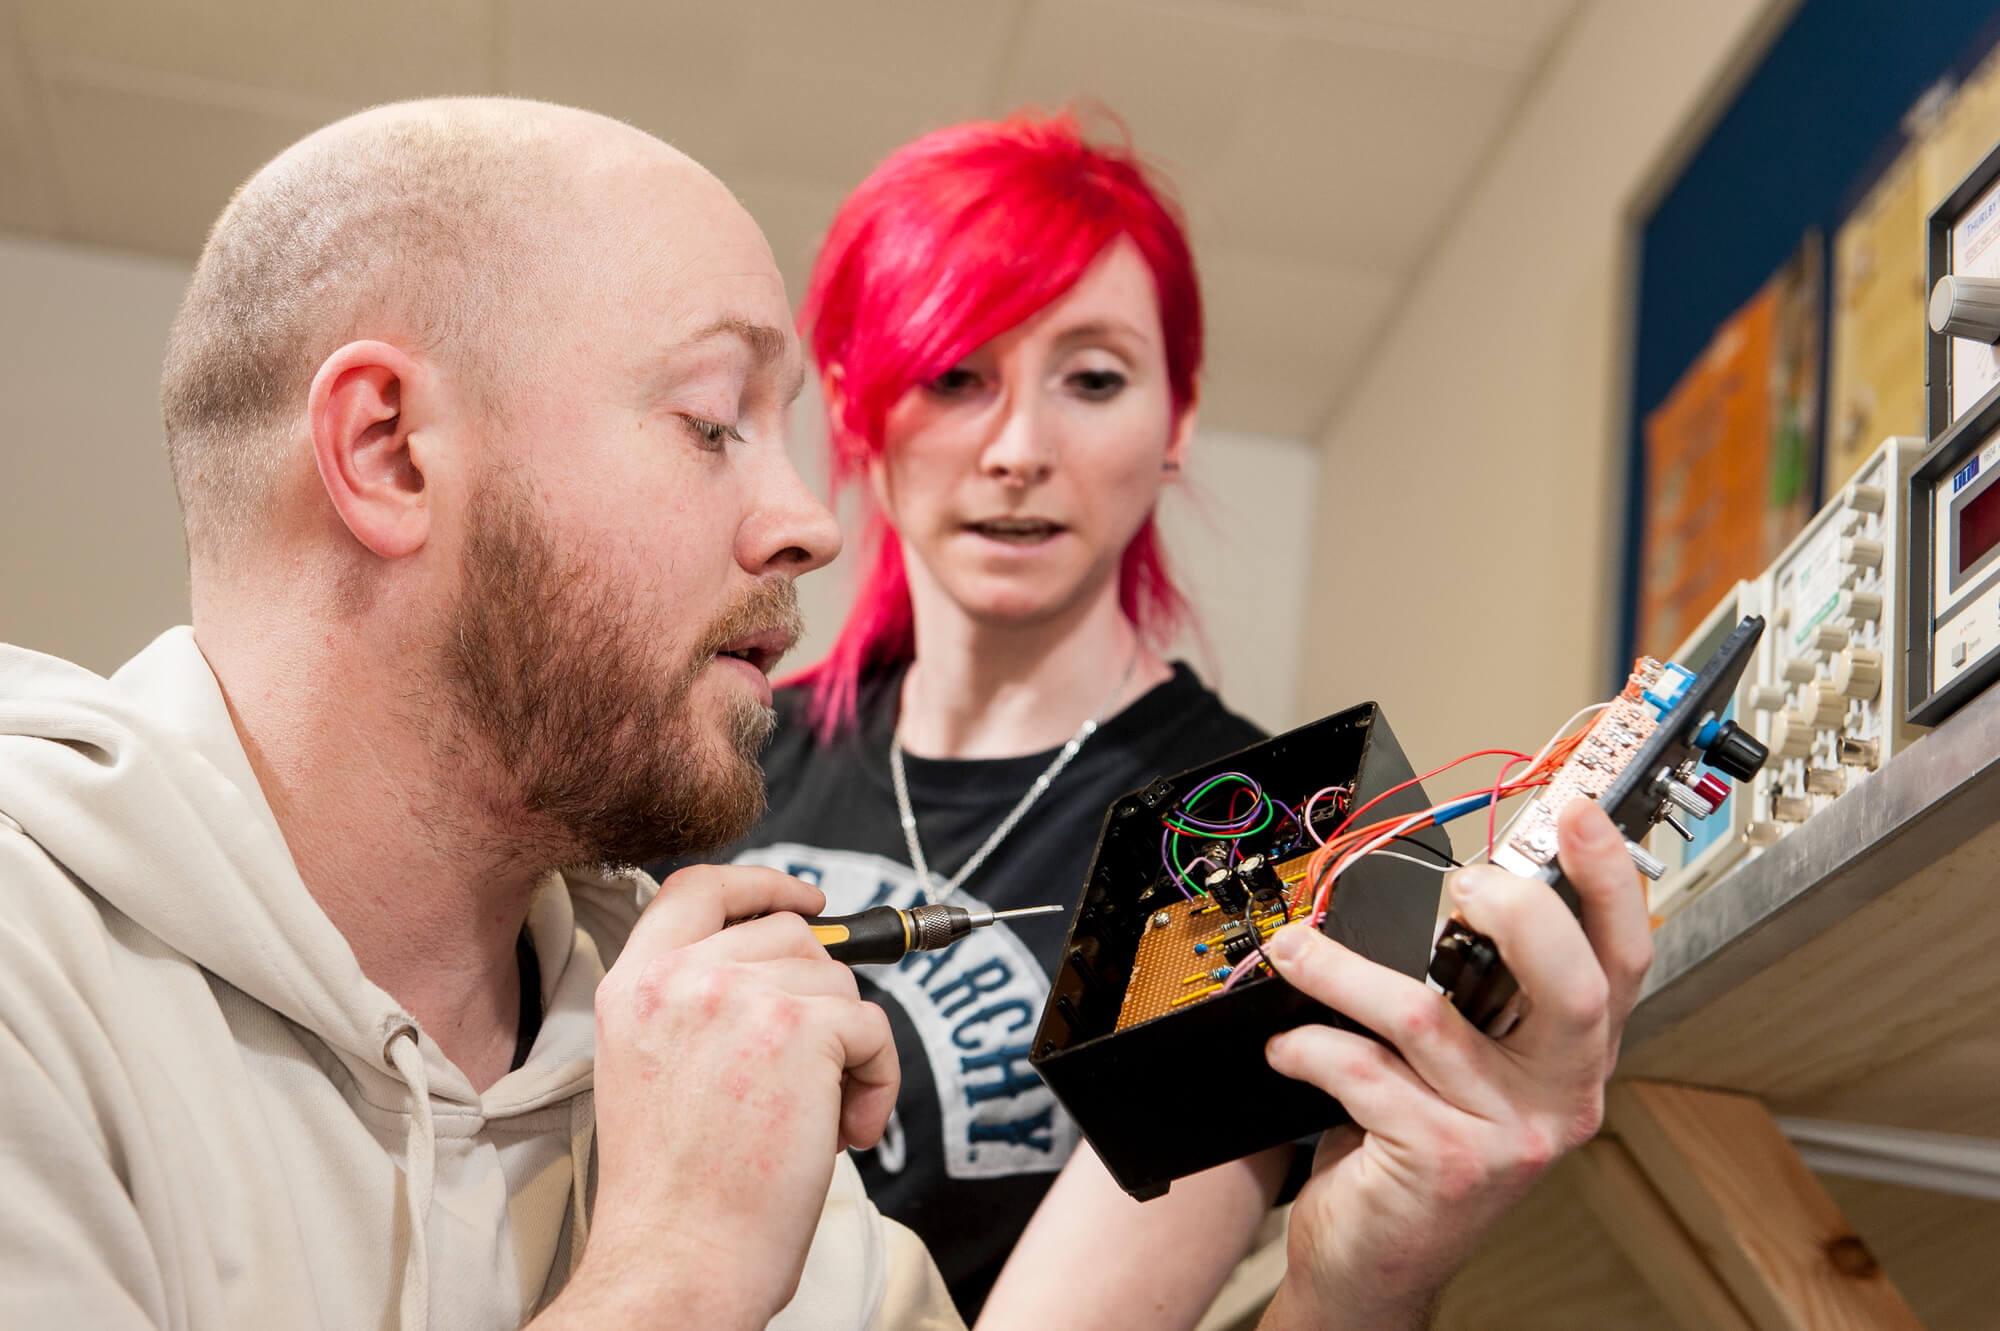 Electrical and Electronic Engineering students work on their own circuit boards